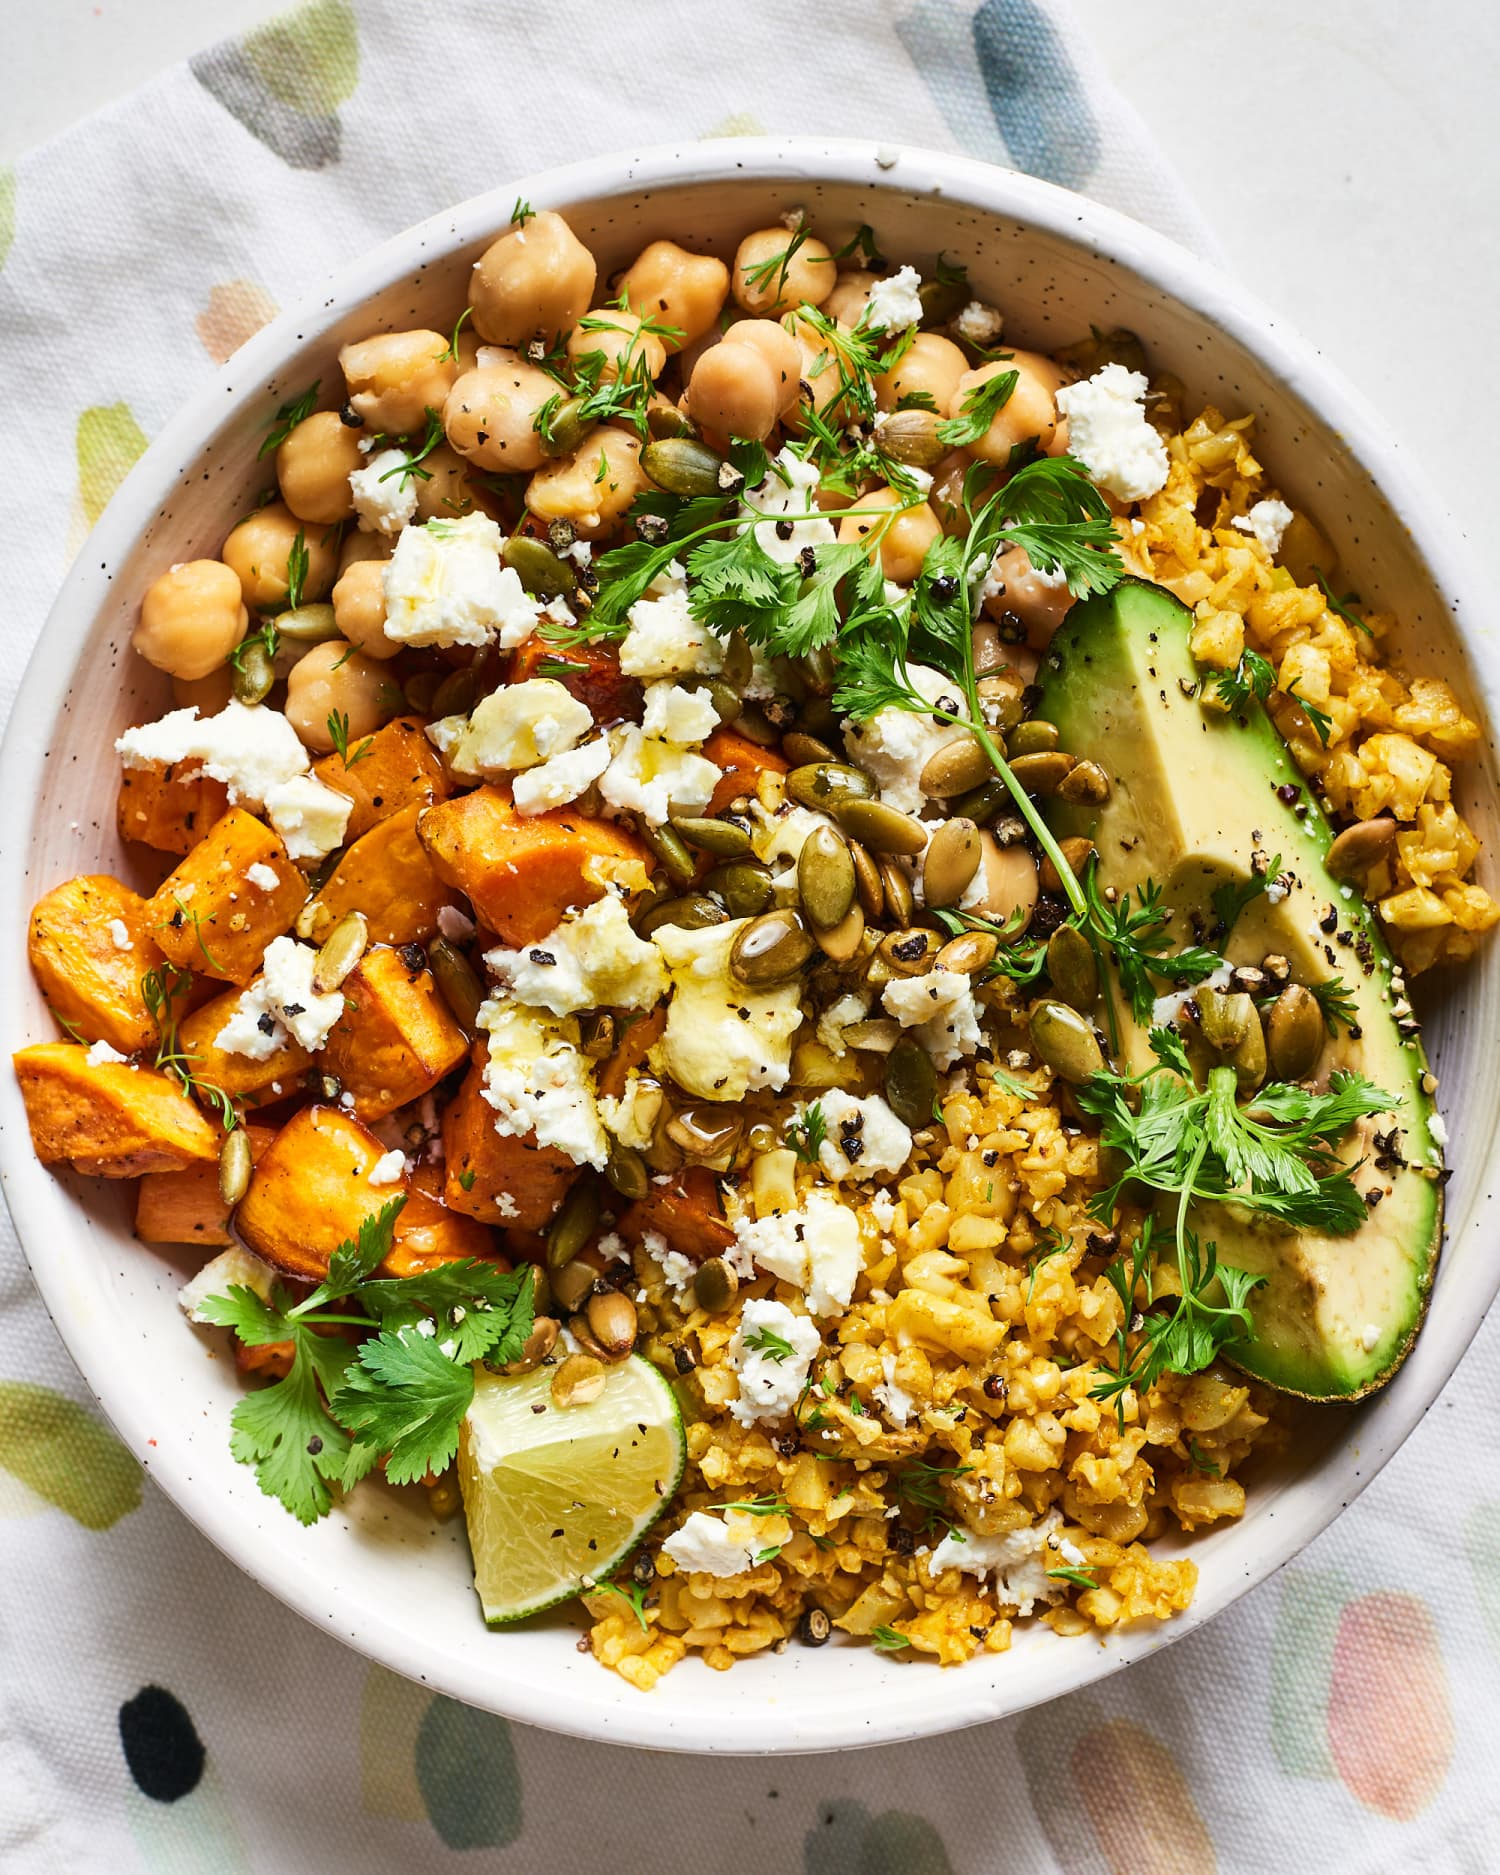 8 Heart-Healthy Ideas For A Nourishing Lunch